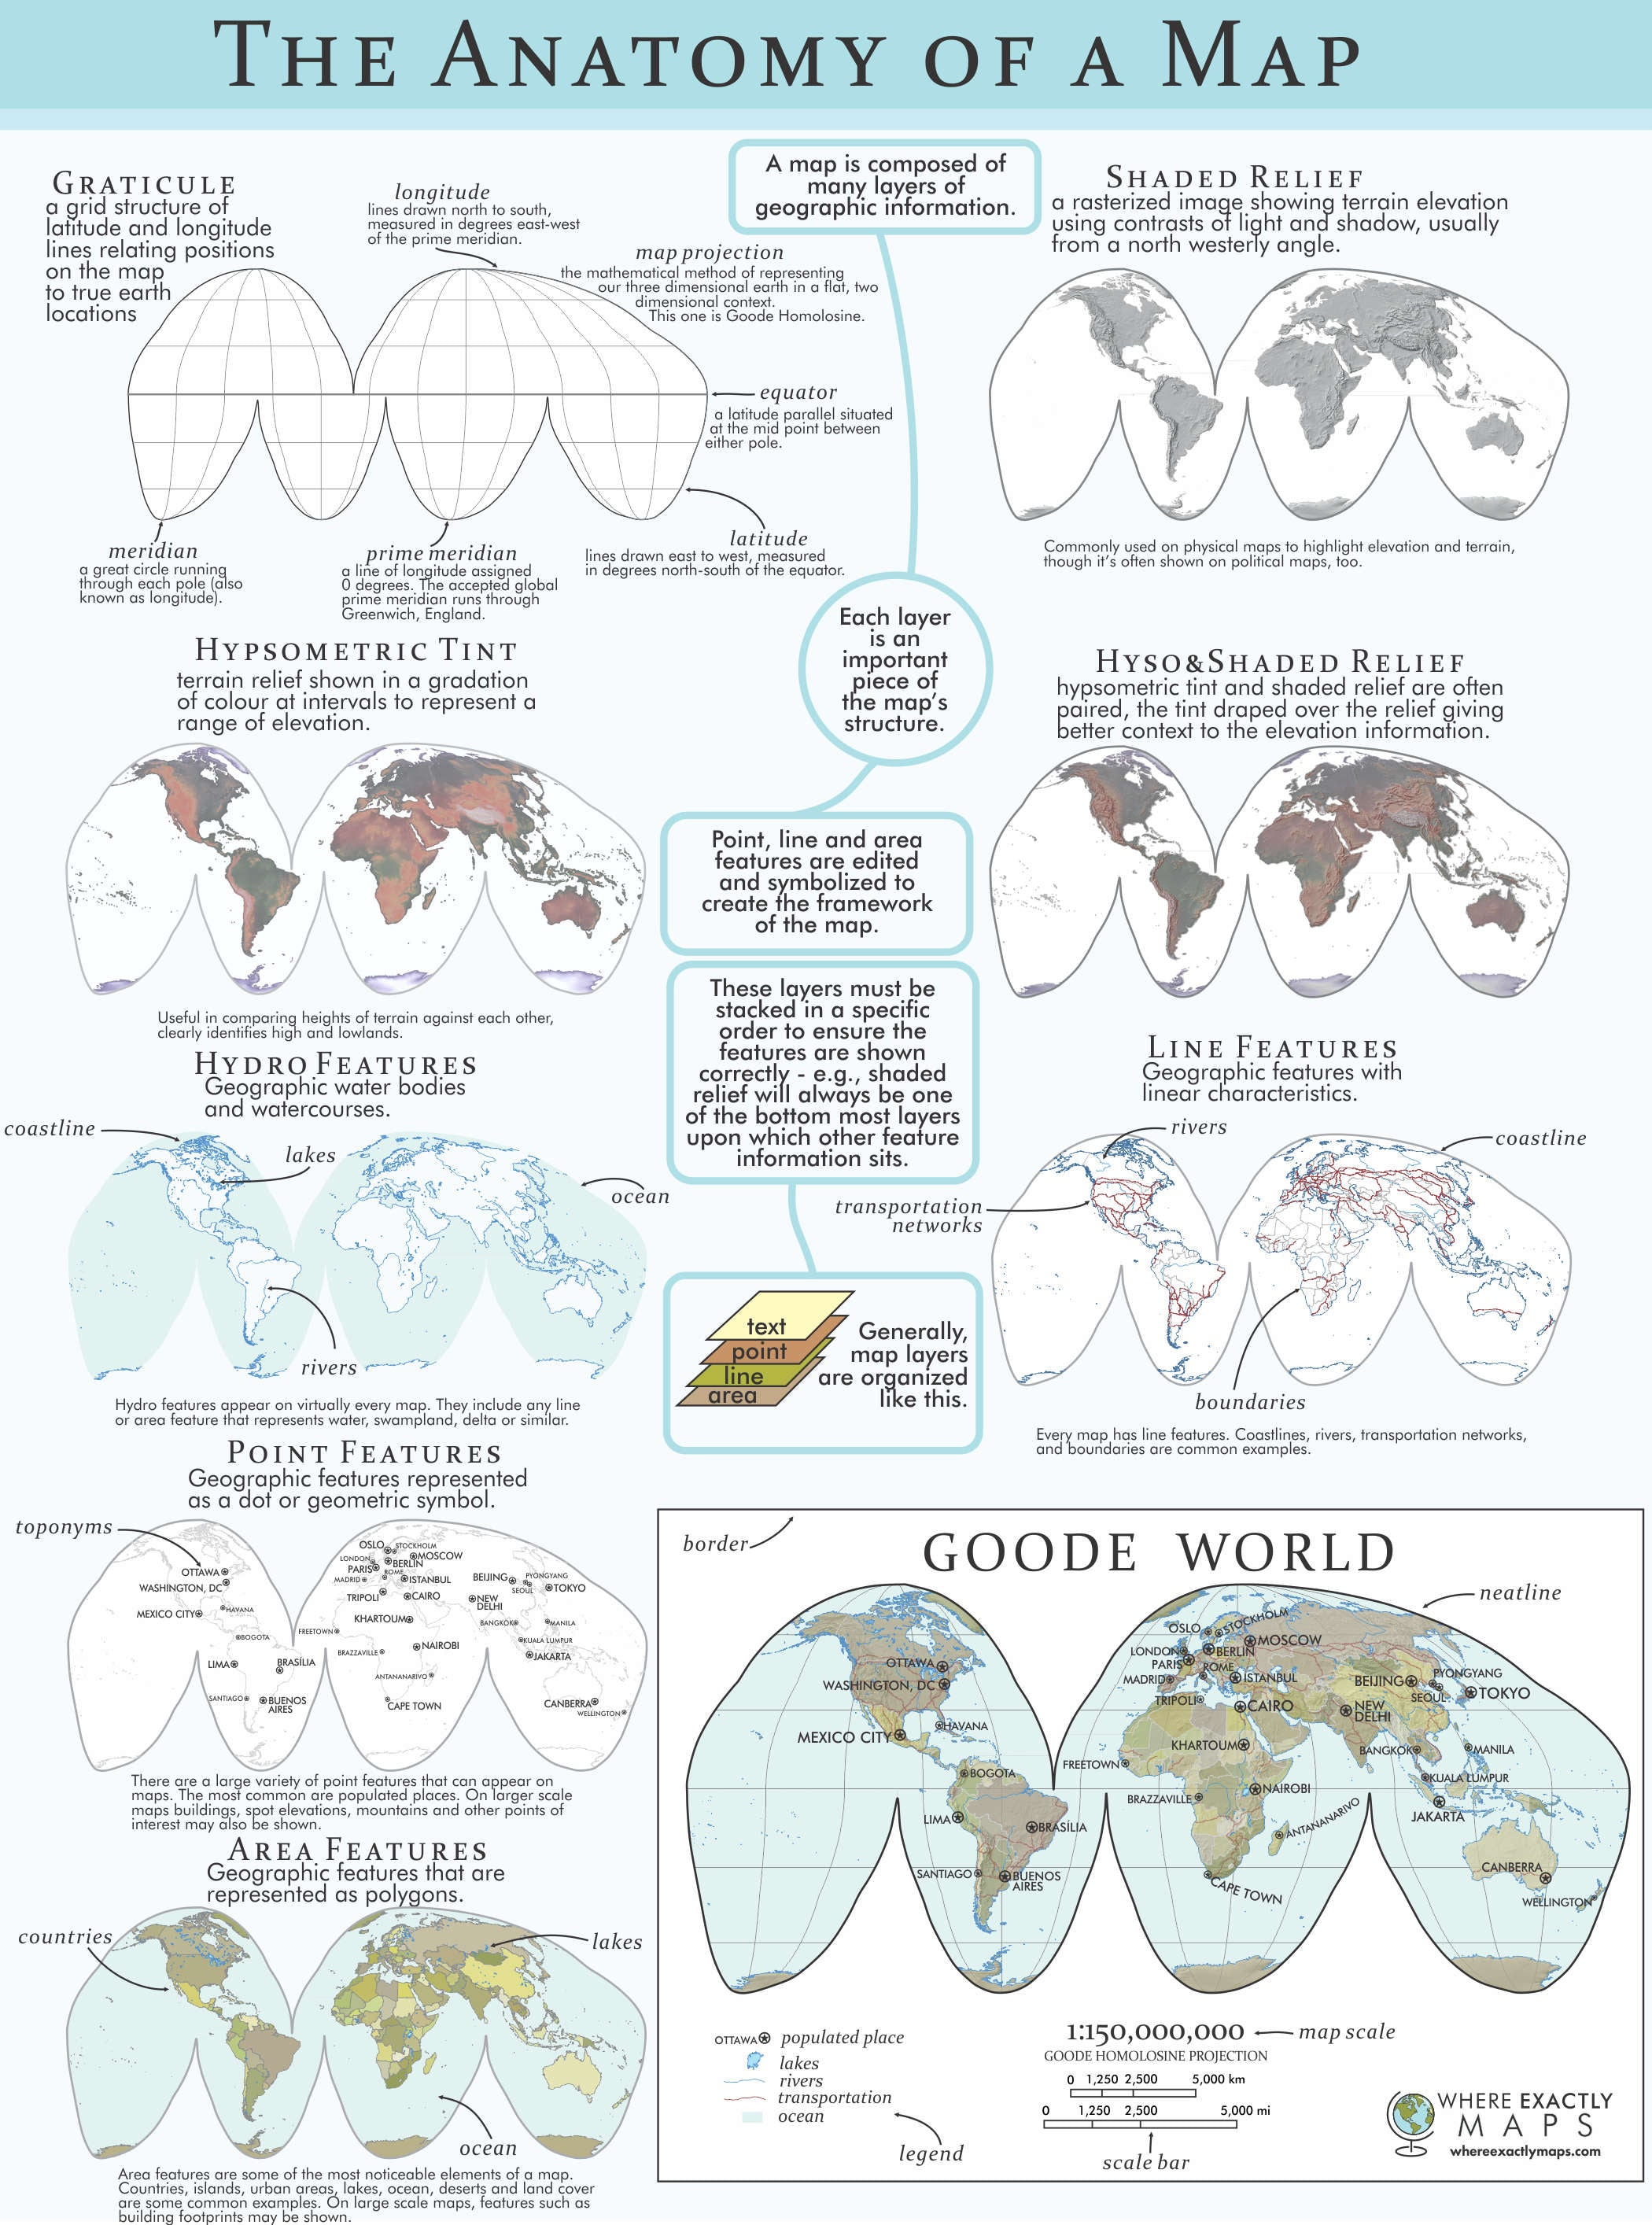 The anatomy of a map. Informative examples showing the composition of a map